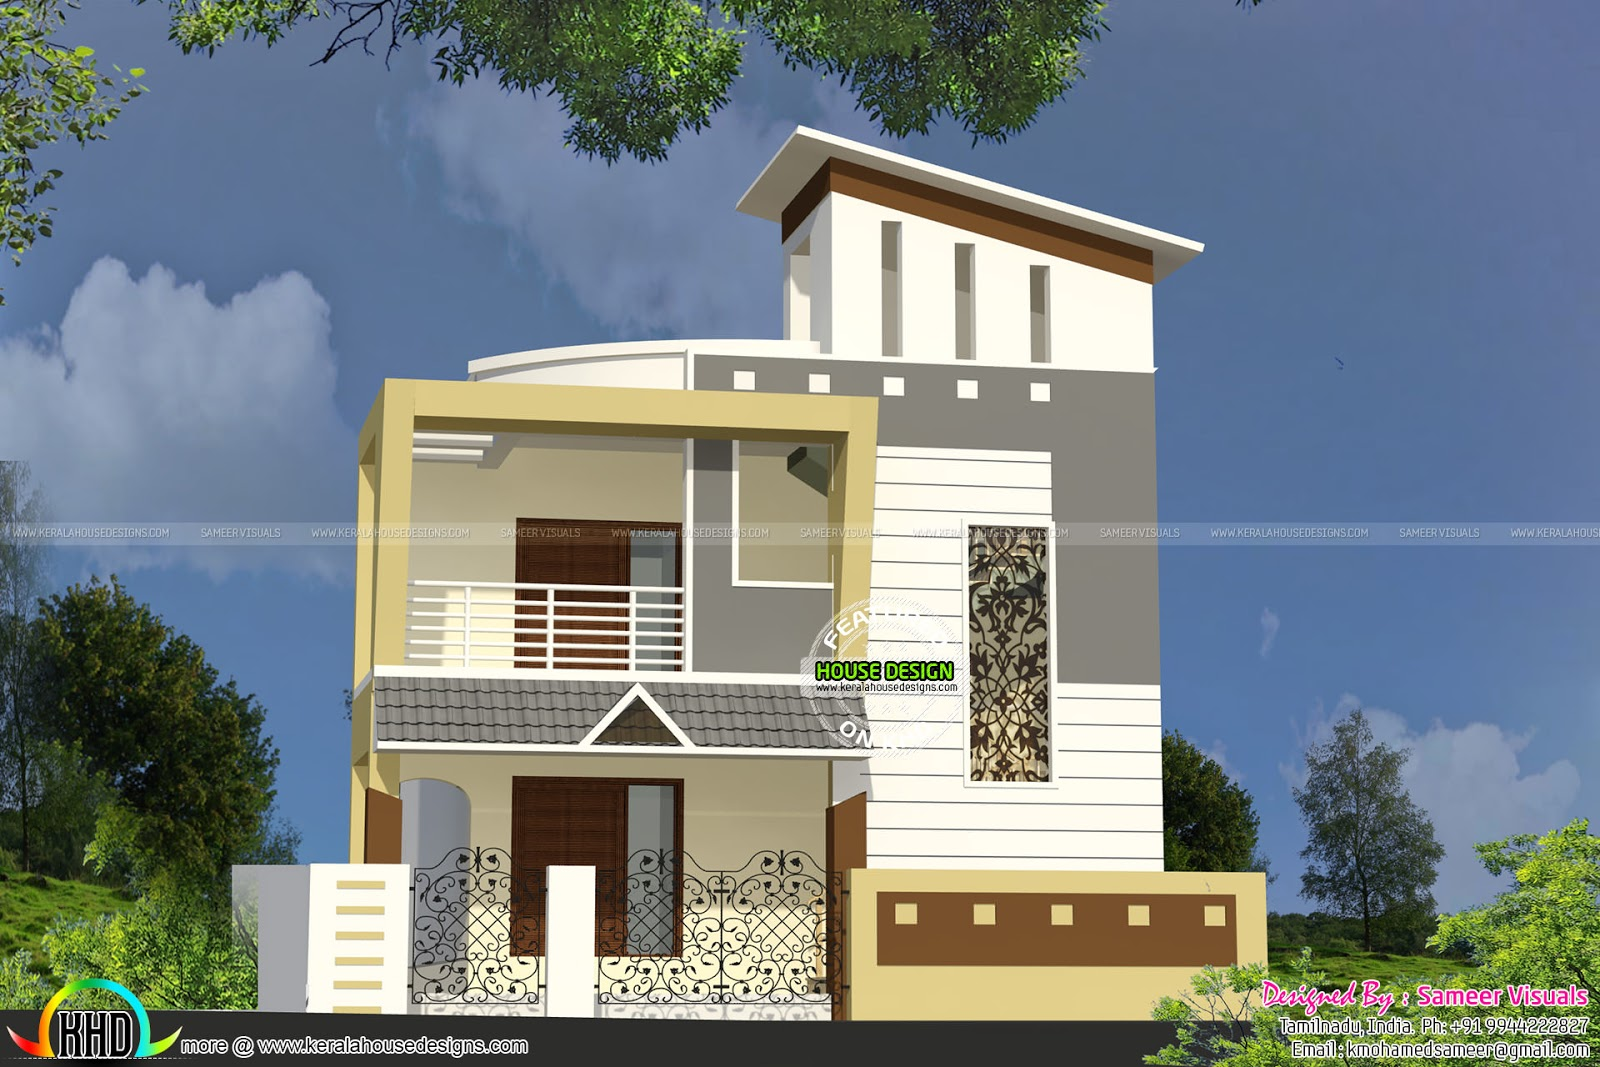 Double floor small home kerala home design and floor plans Small indian home designs photos